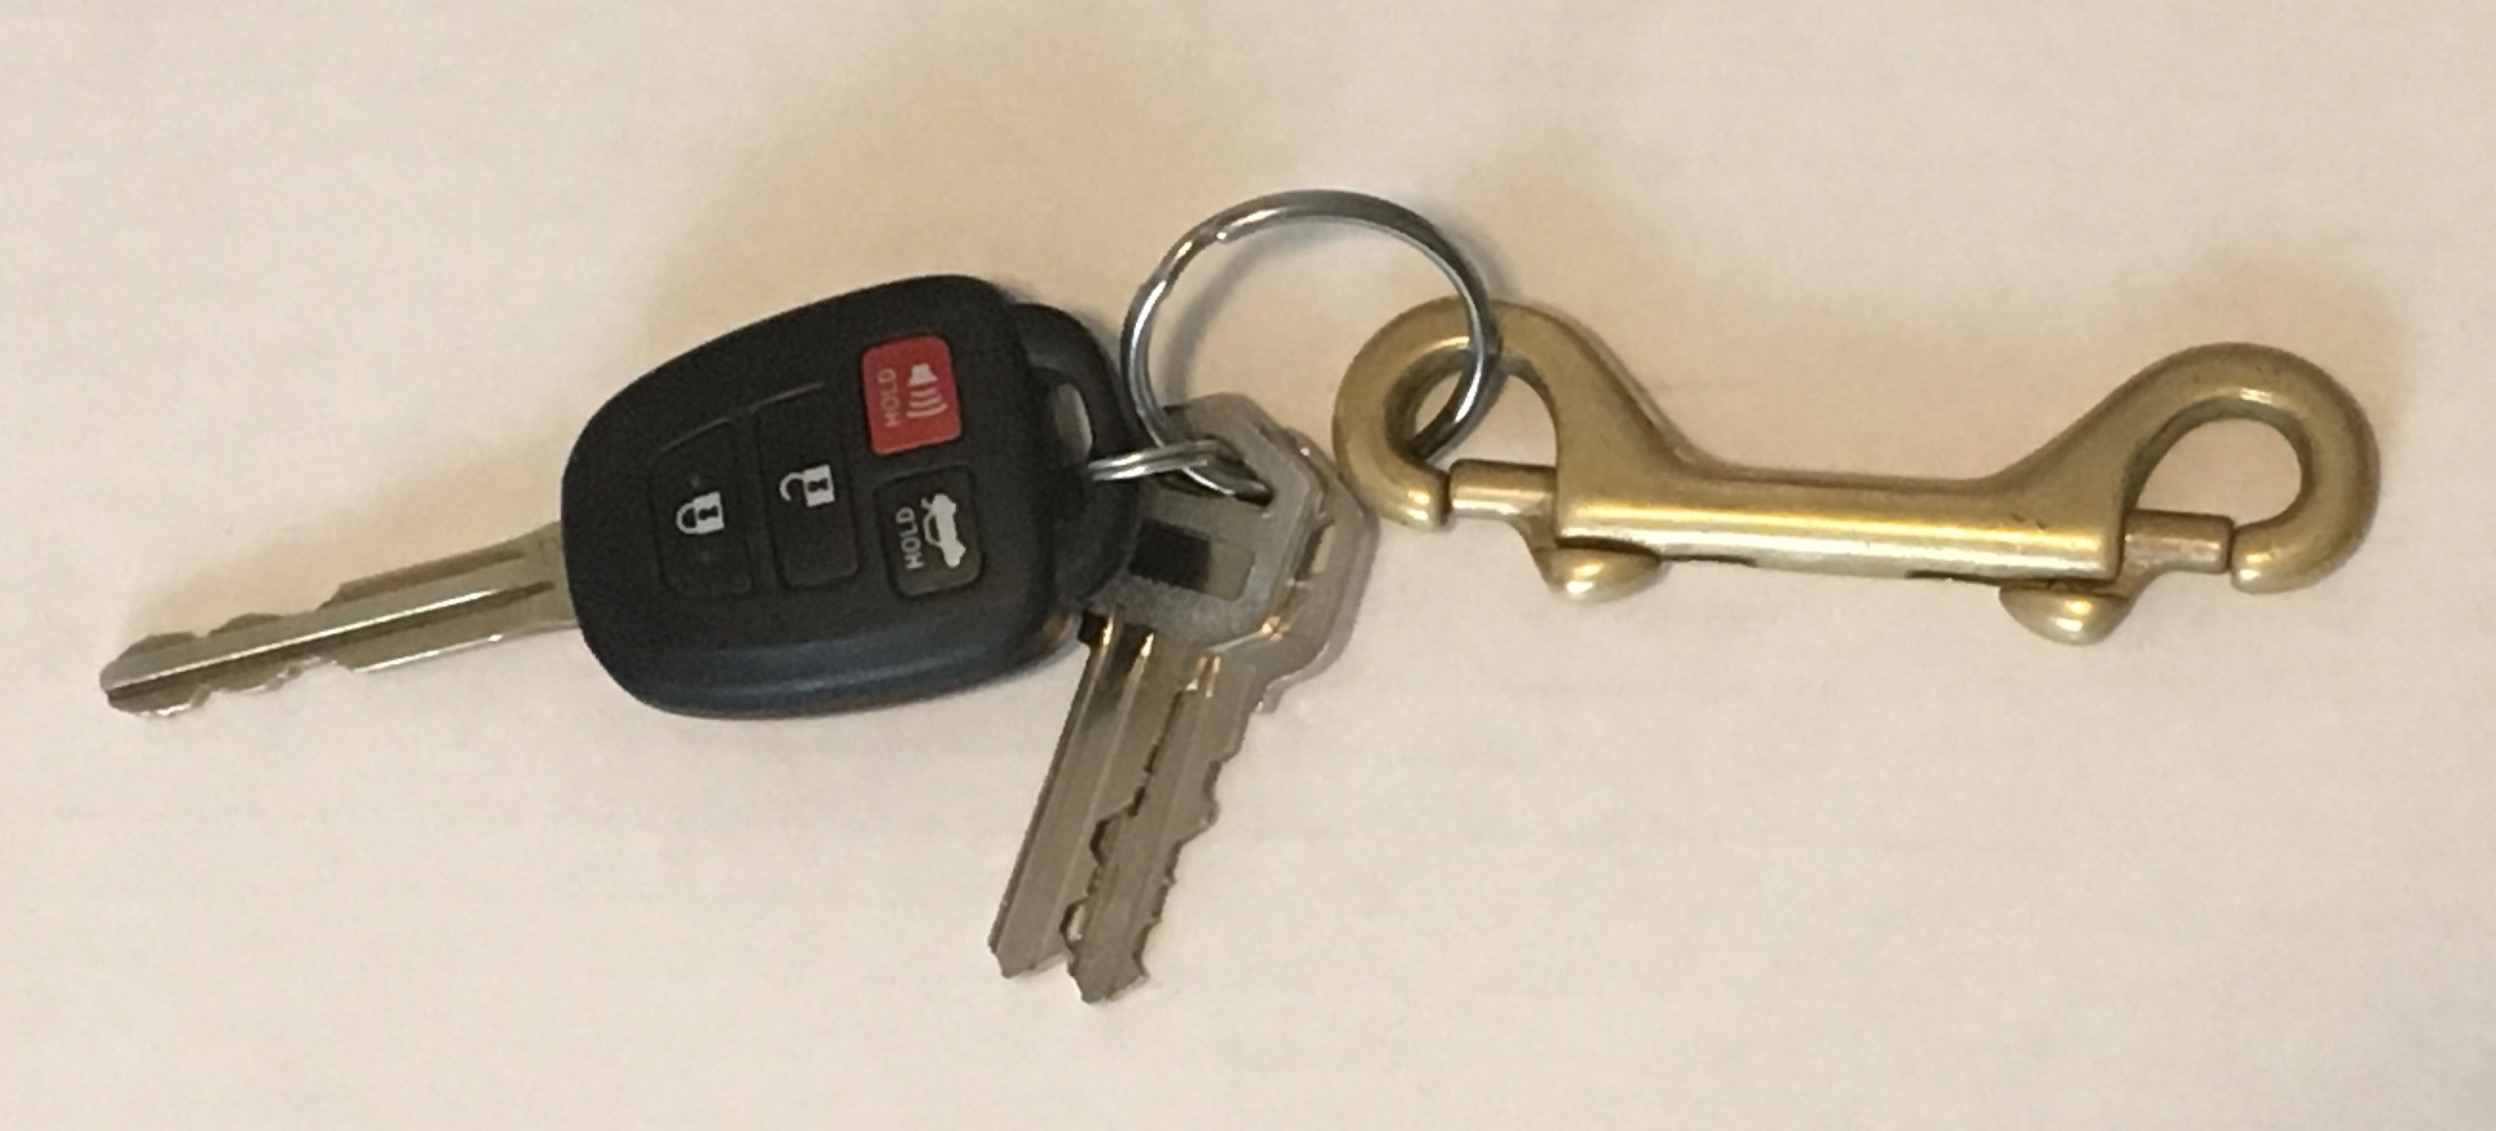 double-ended-snap-clip—with-personal-keys.jpg